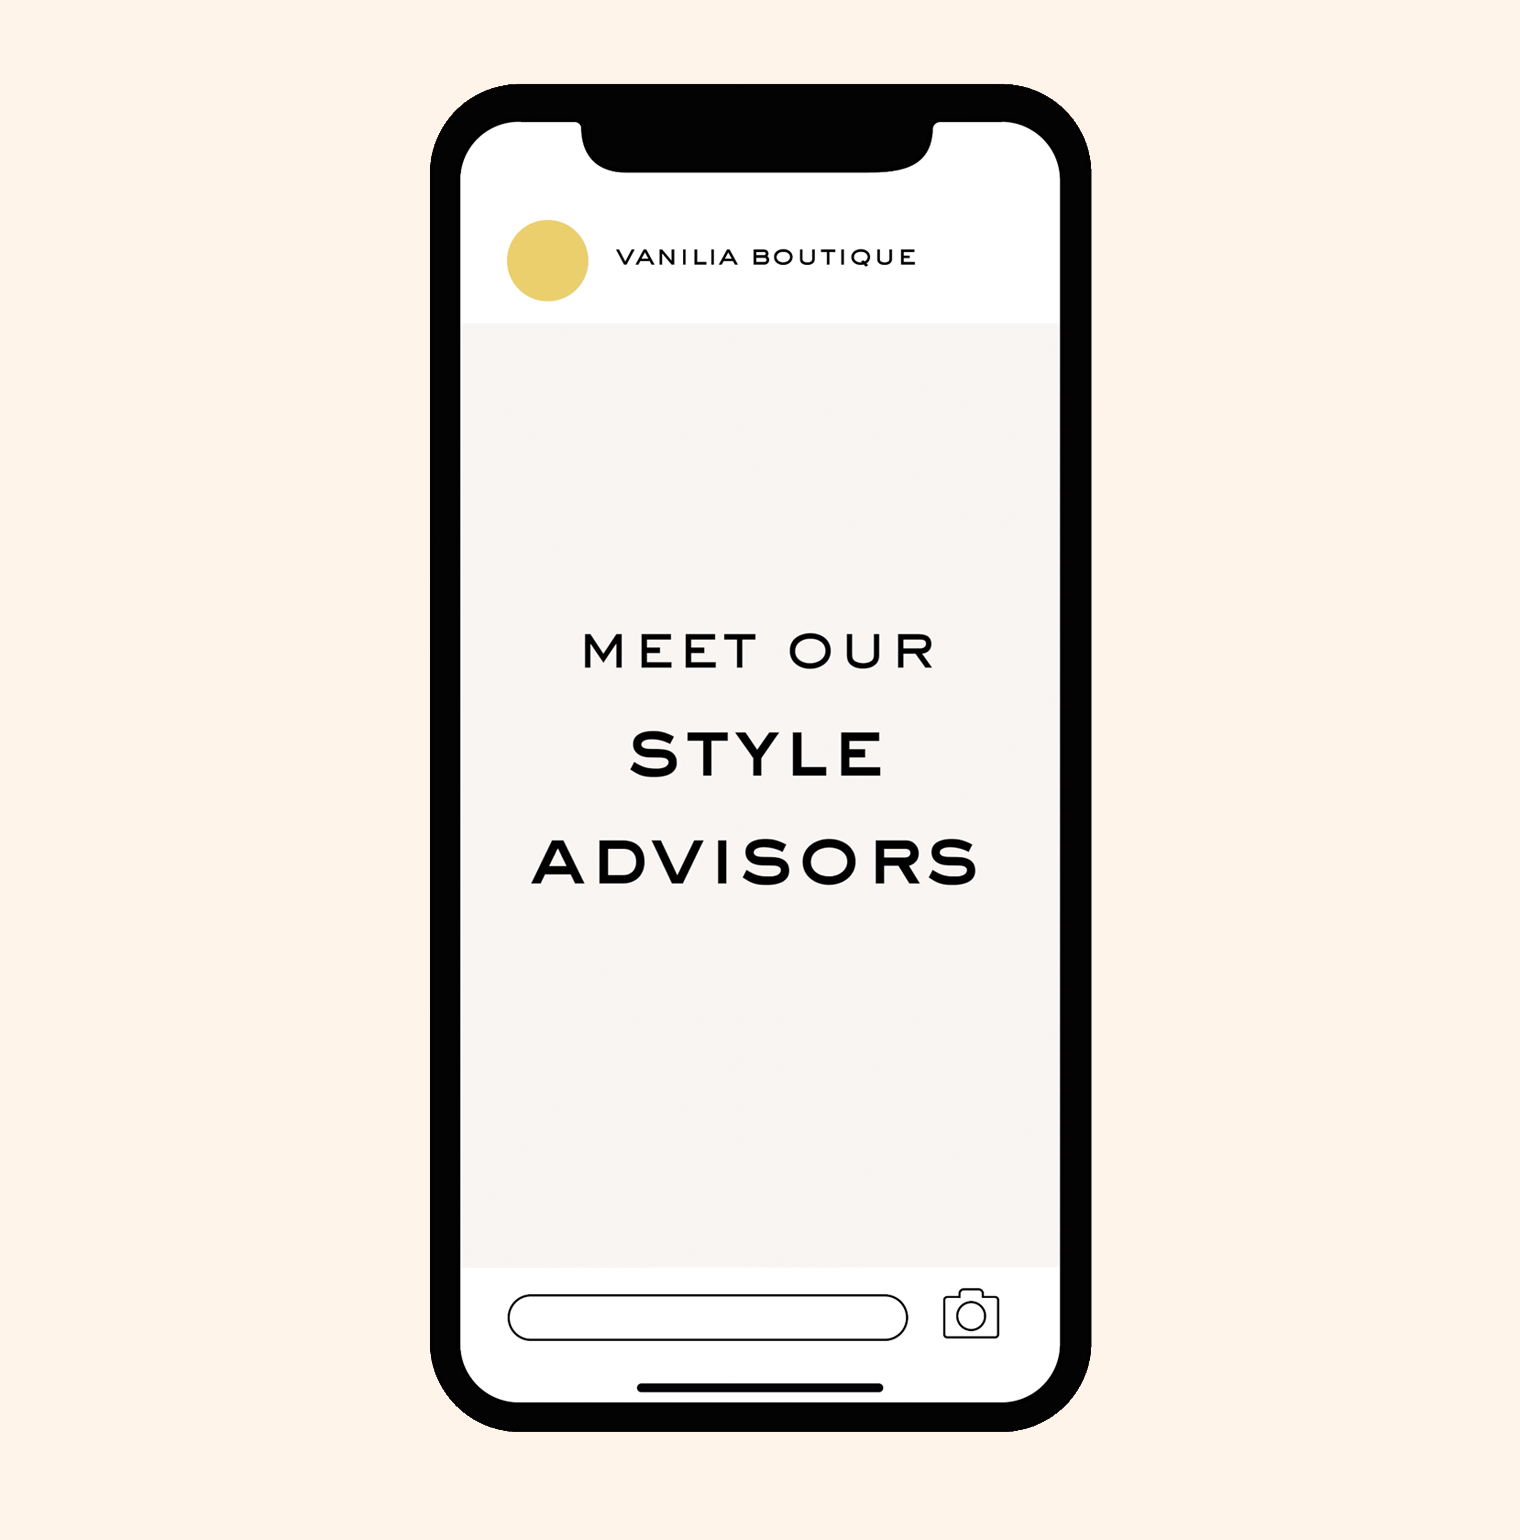 Meet our style advisors